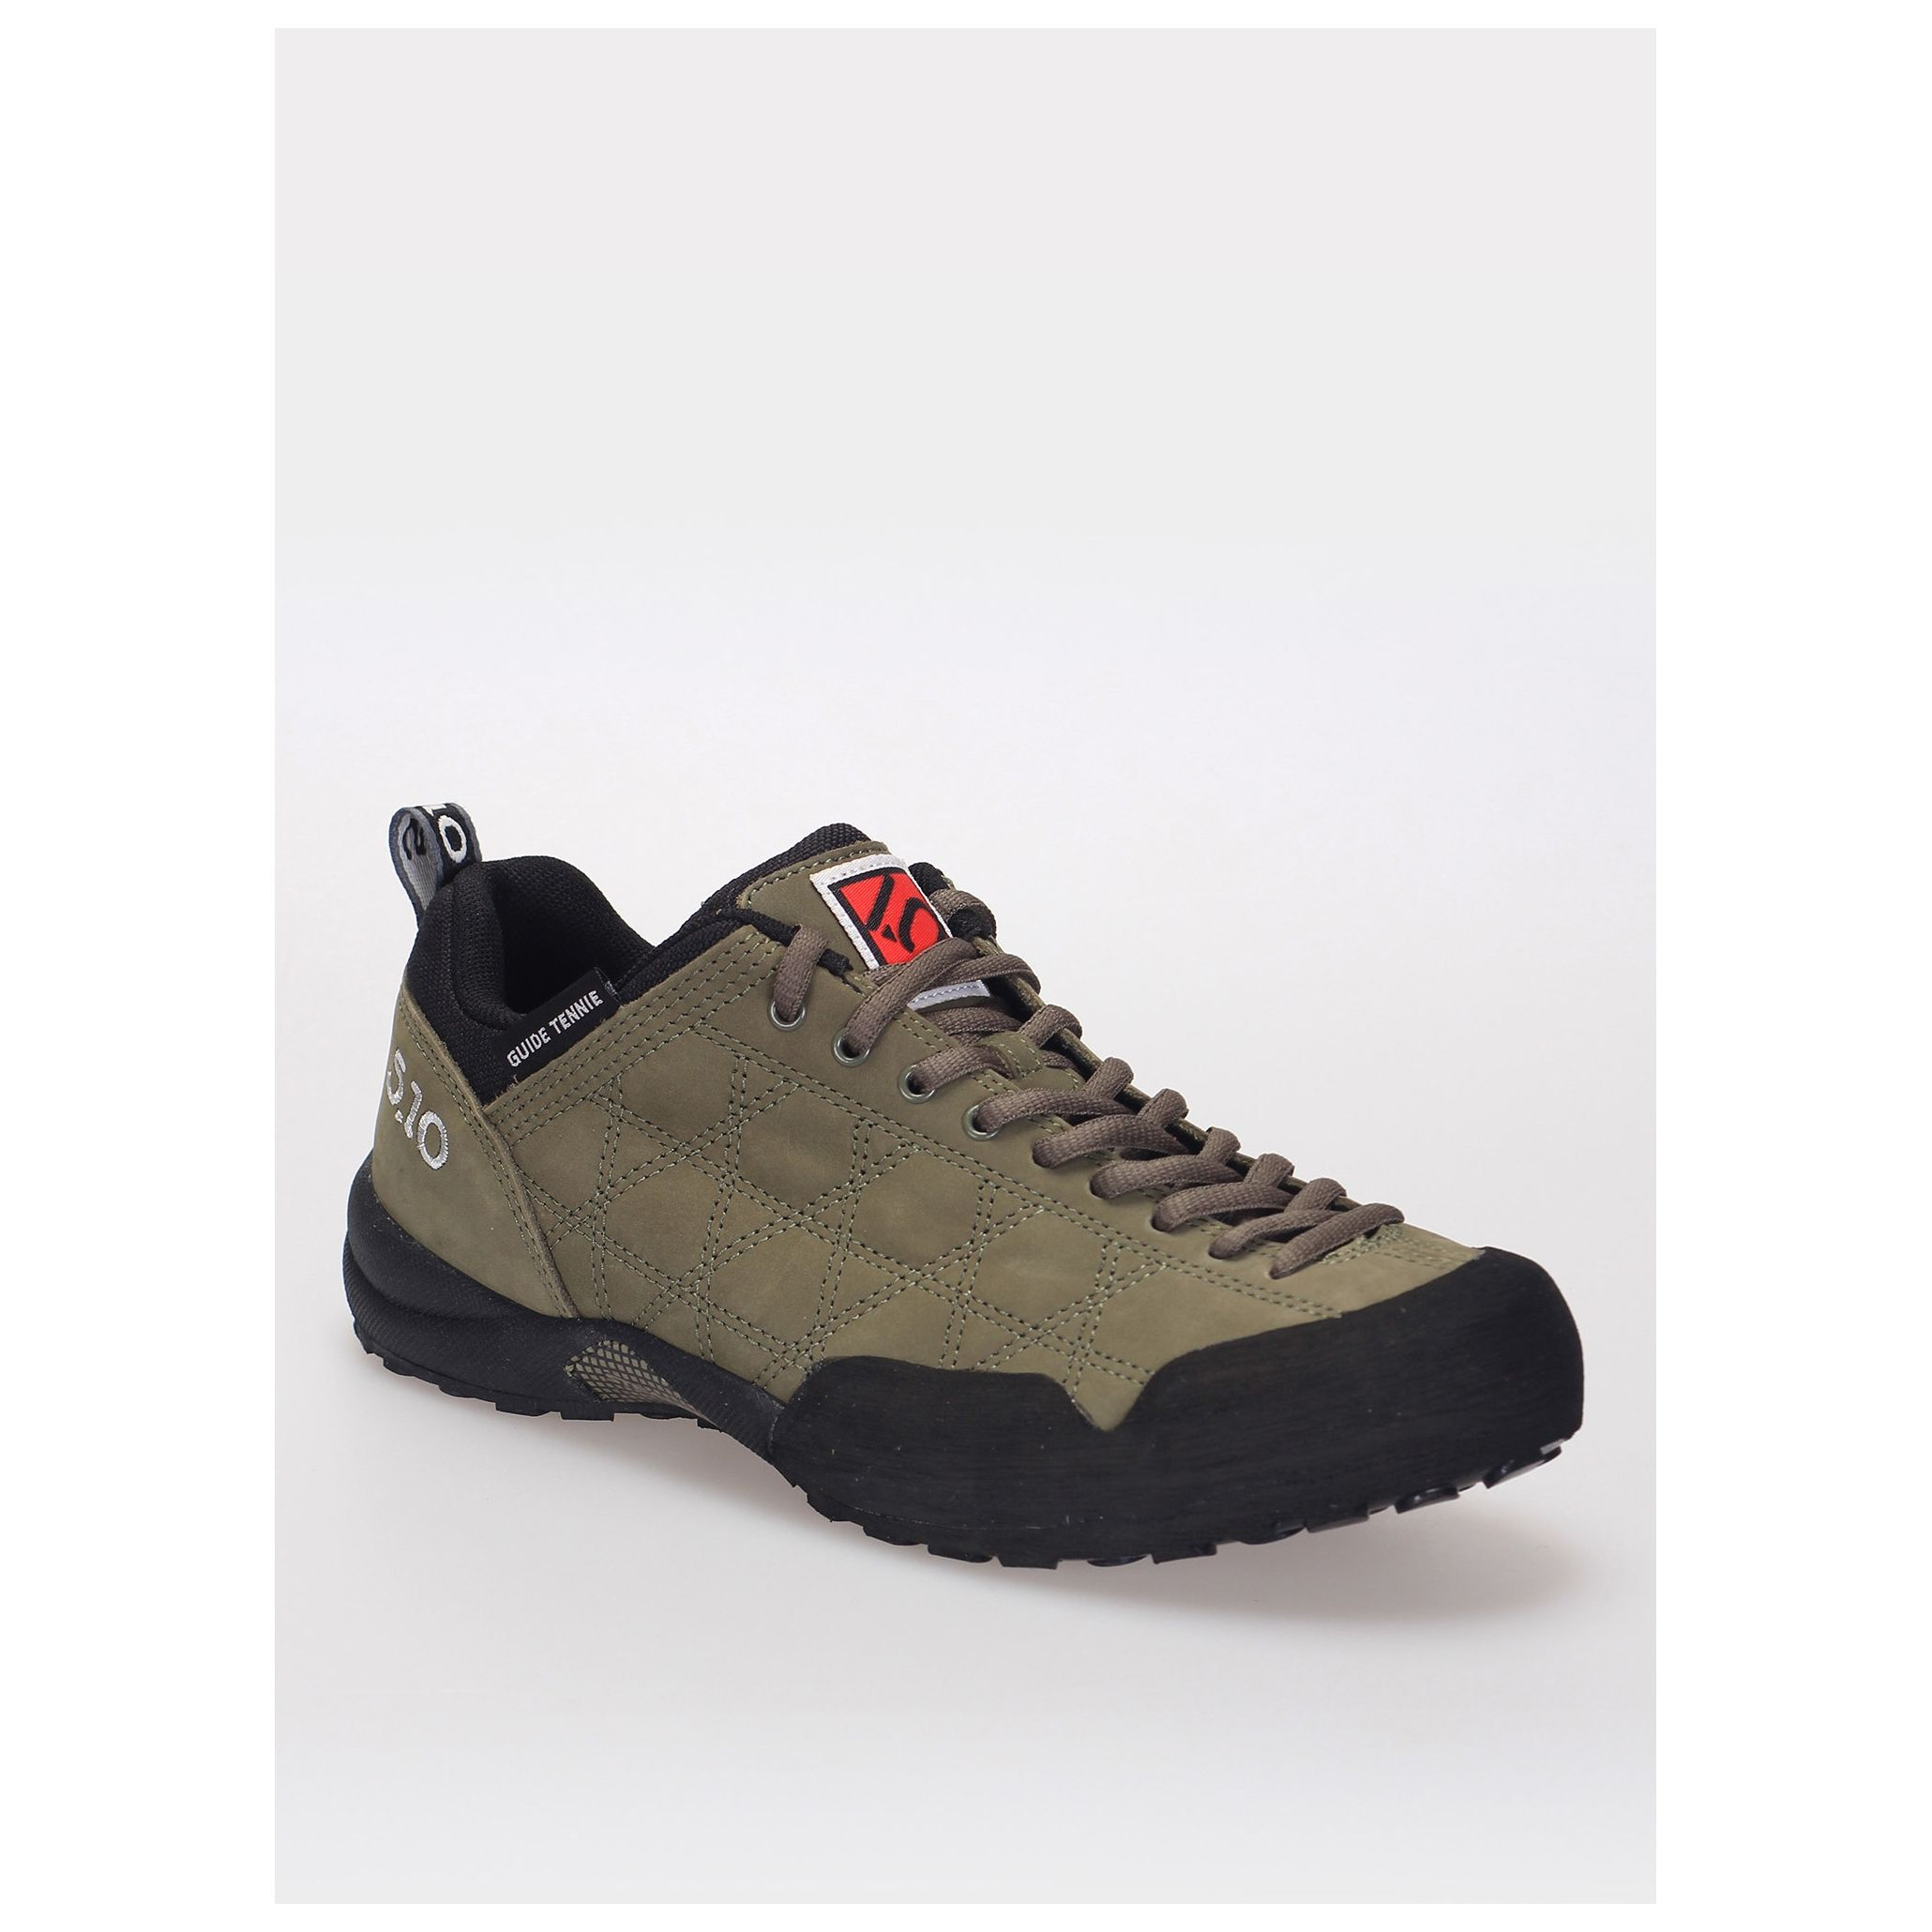 Buty Five Ten Guide Tennie Ne Sklep Turystyczny 8a Pl Buty Trekkingowe Namioty The North Face Salewa Hiking Boots Boots Saucony Sneaker